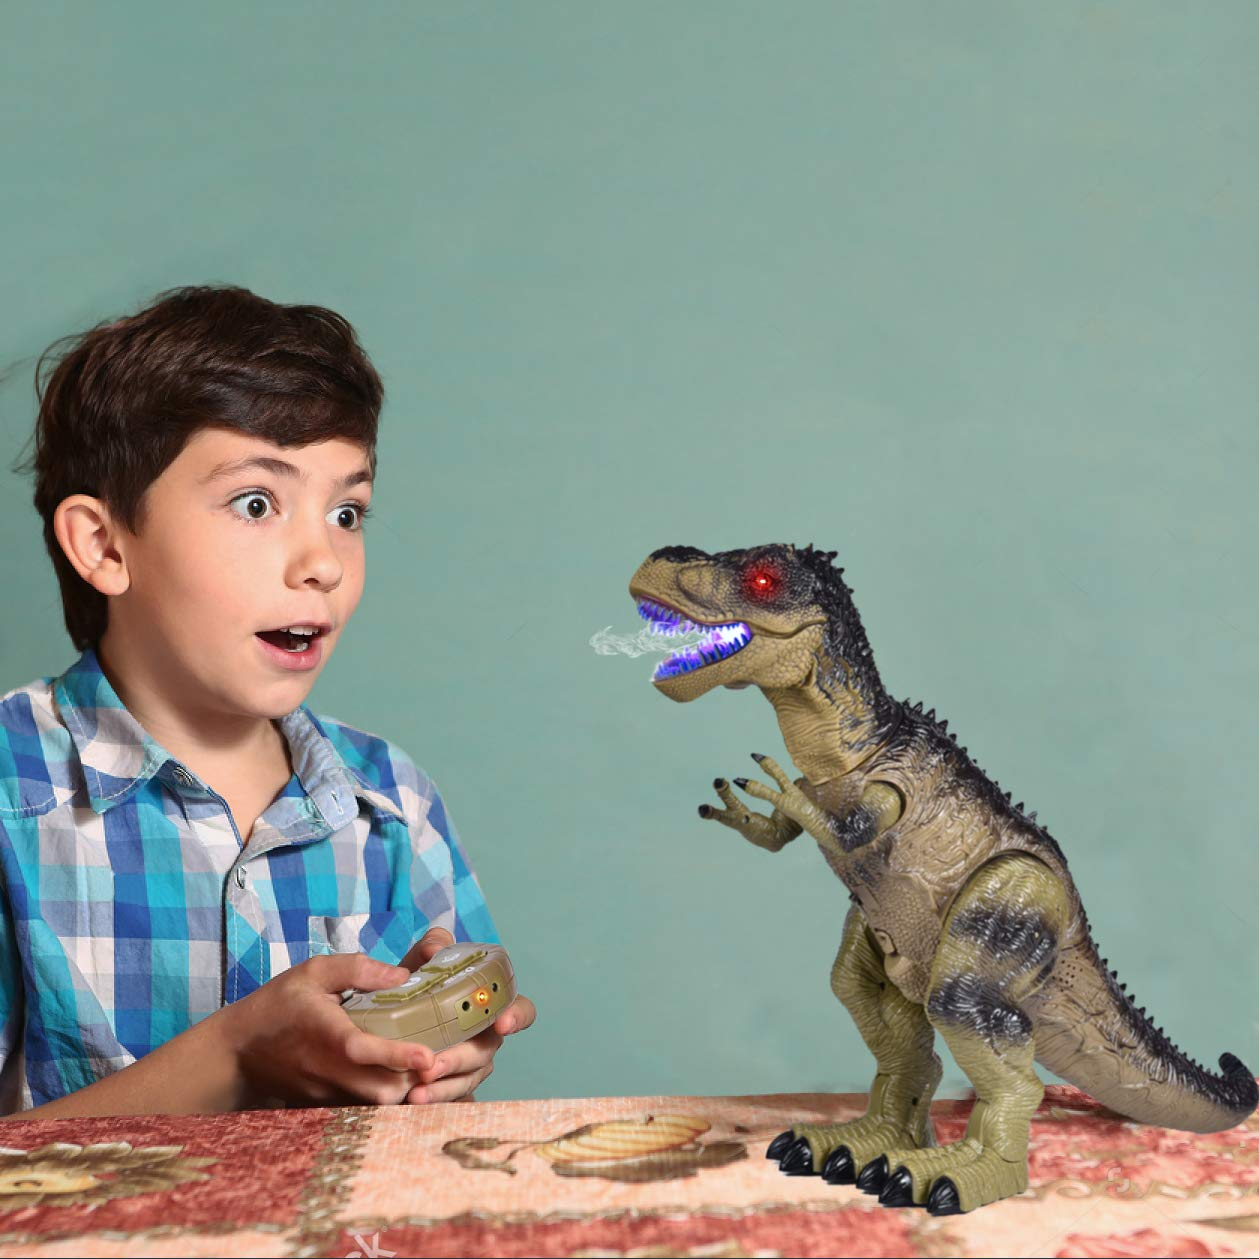 Remote Control Dinosaur for Kids, Electronic Walking & Spray Mist Large Dinosaur Toys with Glowing Eyes, Roaring Dinosaur Sound,18.5'' Realistic T-Rex Toy for Boys by FUN LITTLE TOYS (Image #2)